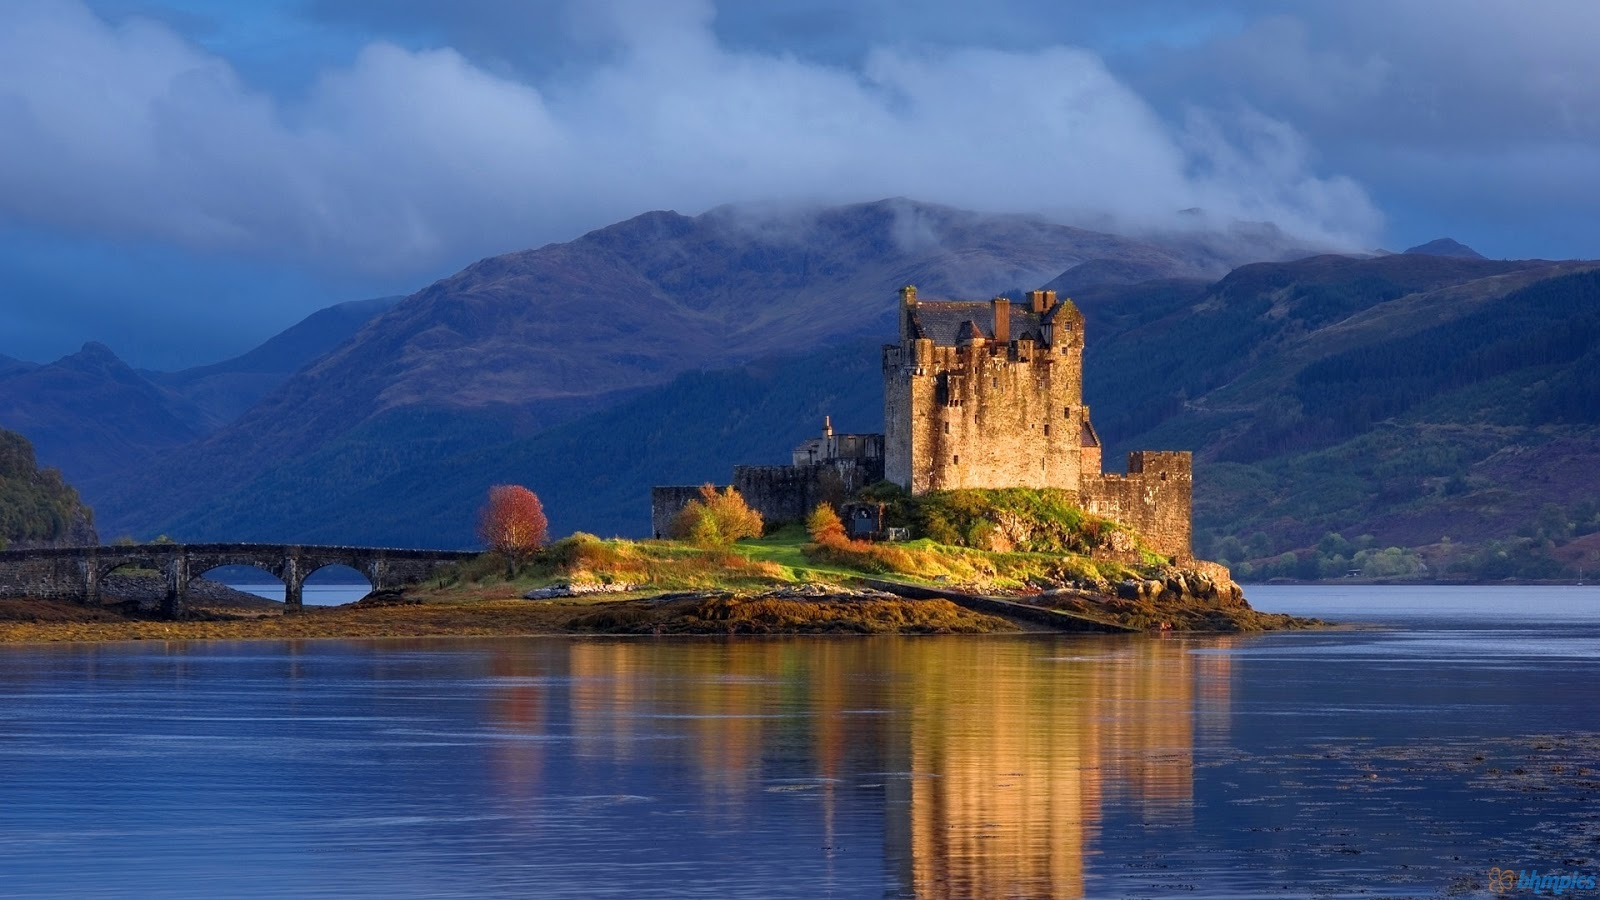 Eilean Donan Castle - Why Scotland May Be The Most Breathtaking Country on Earth